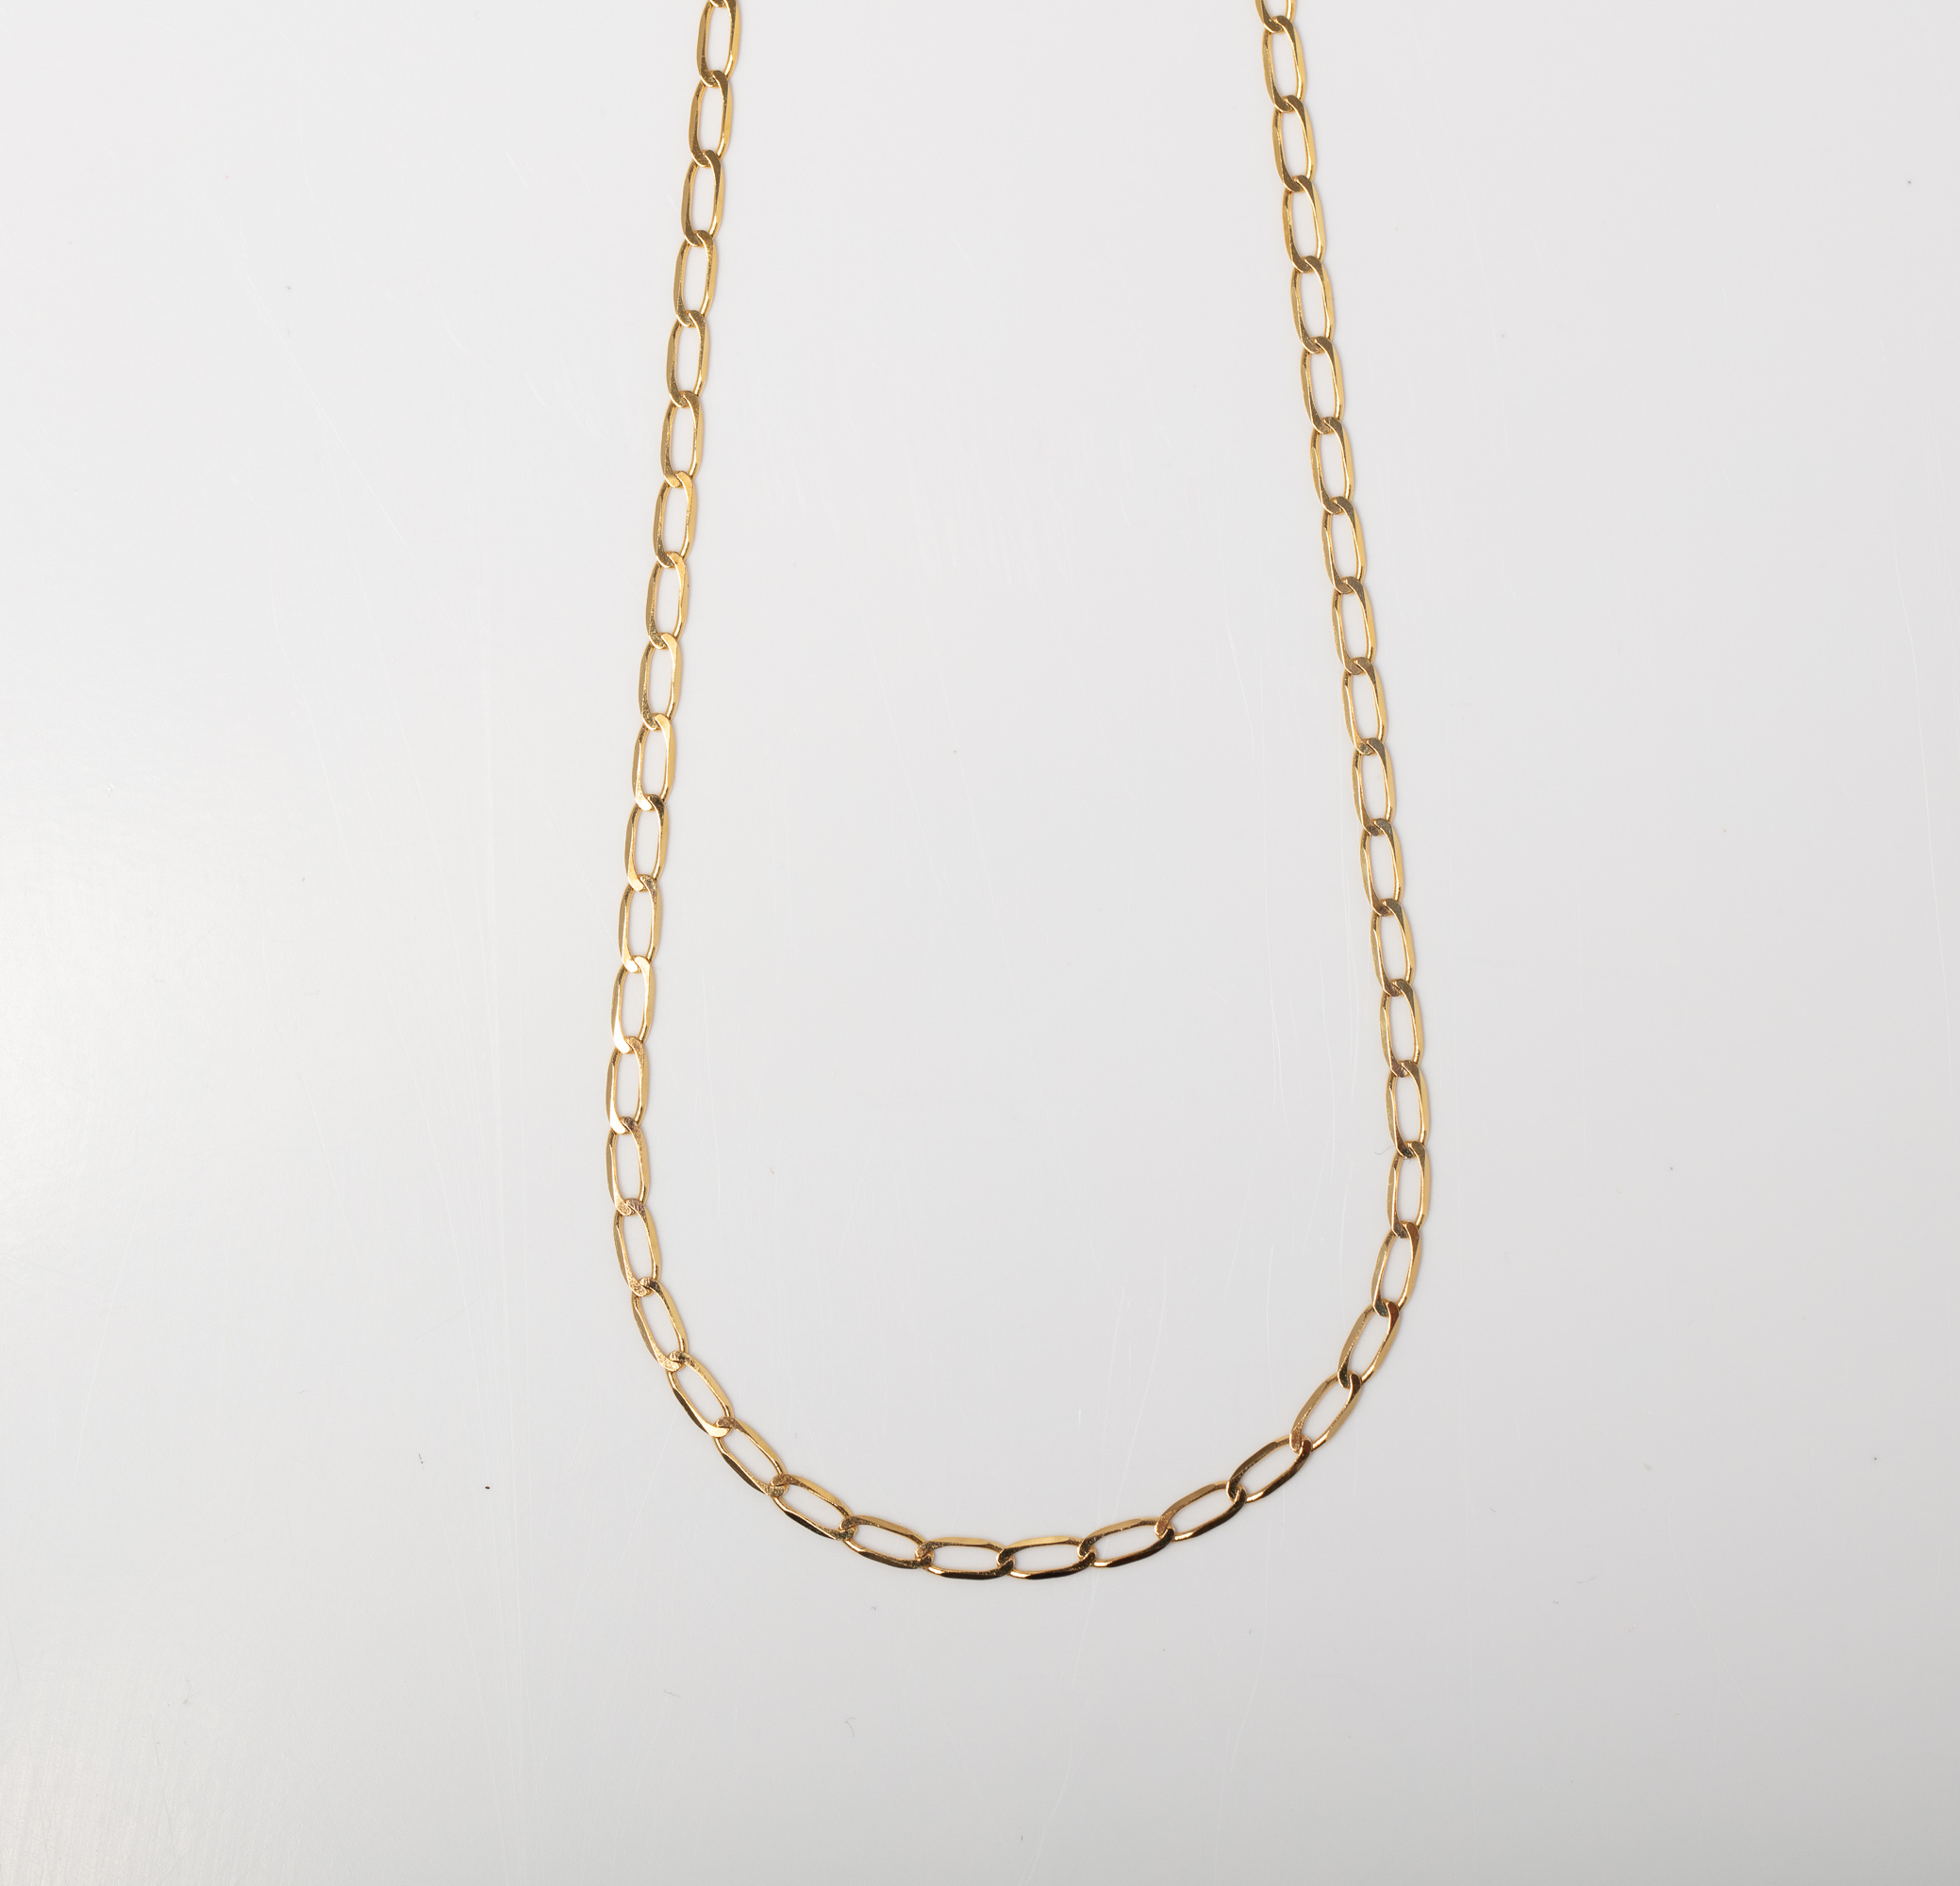 A 9CT GOLD LONG LINK CURB CHAIN